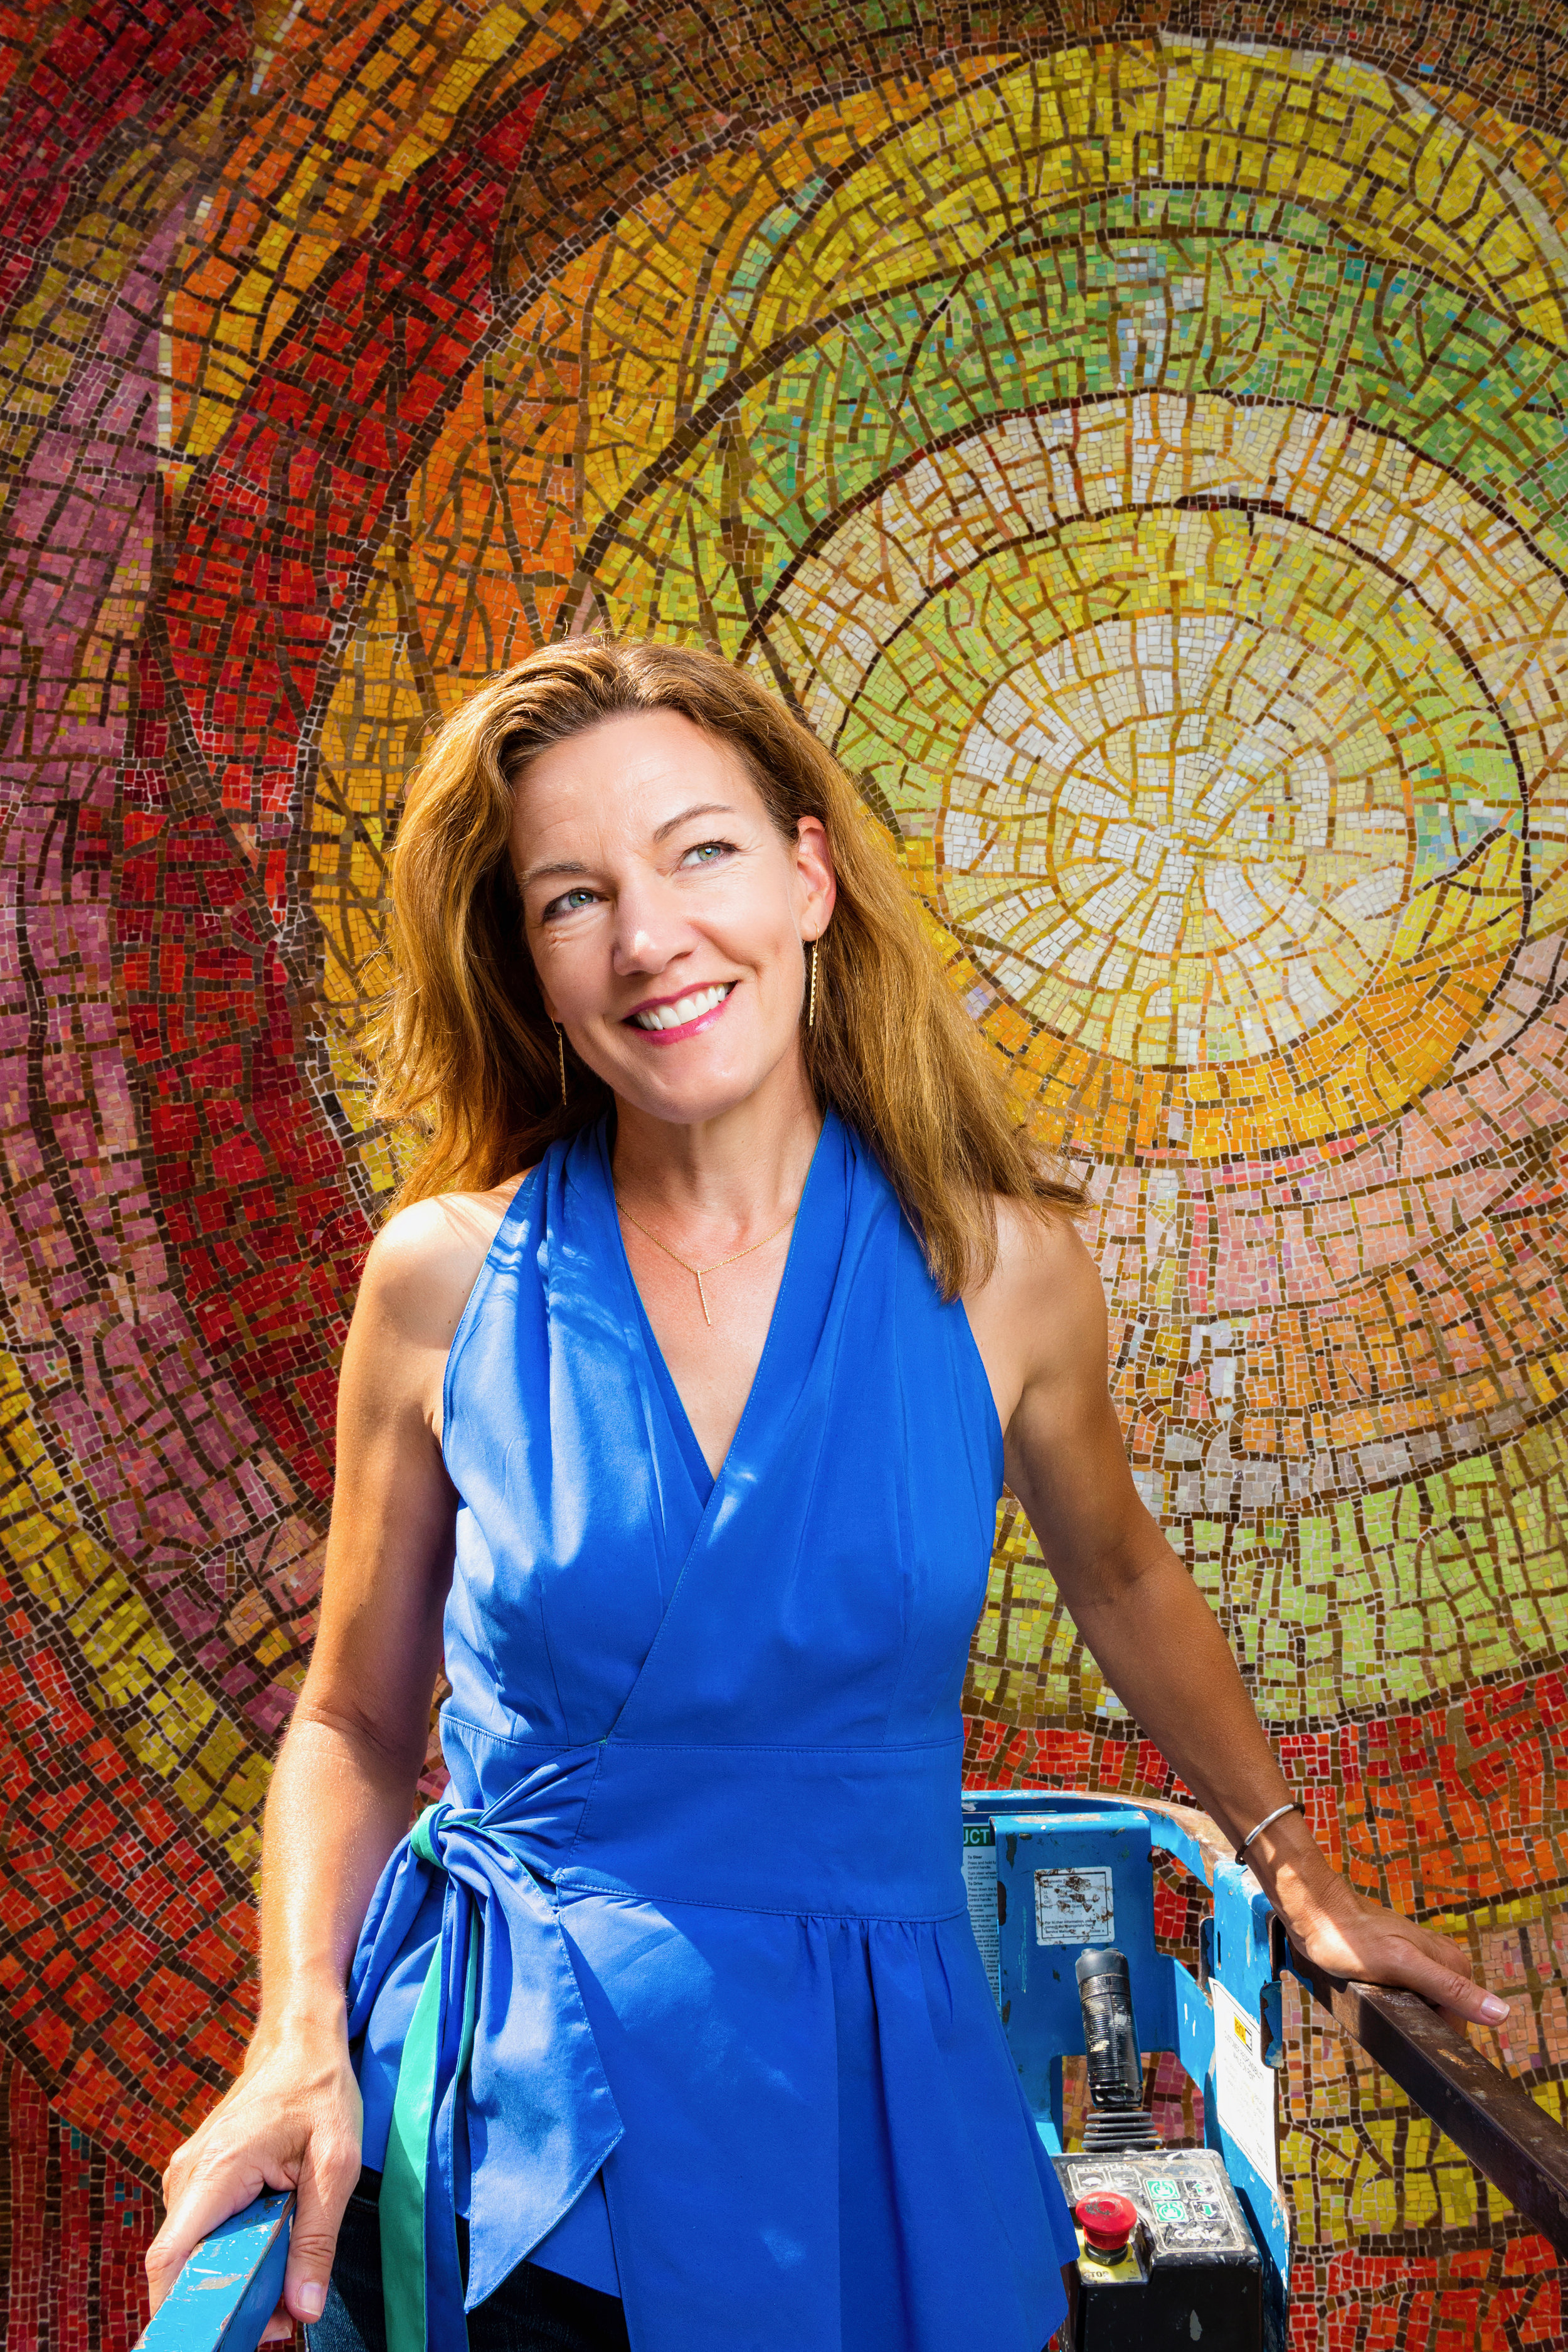 - Julie Richey, pictured at the St. Jude Chapel, where she and a team from Art Restorations of Dallas restored the Gyorgy Kepes mid-century mosaic façade in downtown Dallas, Texas.Photo by Danny Fulgencio for Oak Cliff Advocate Magazine.